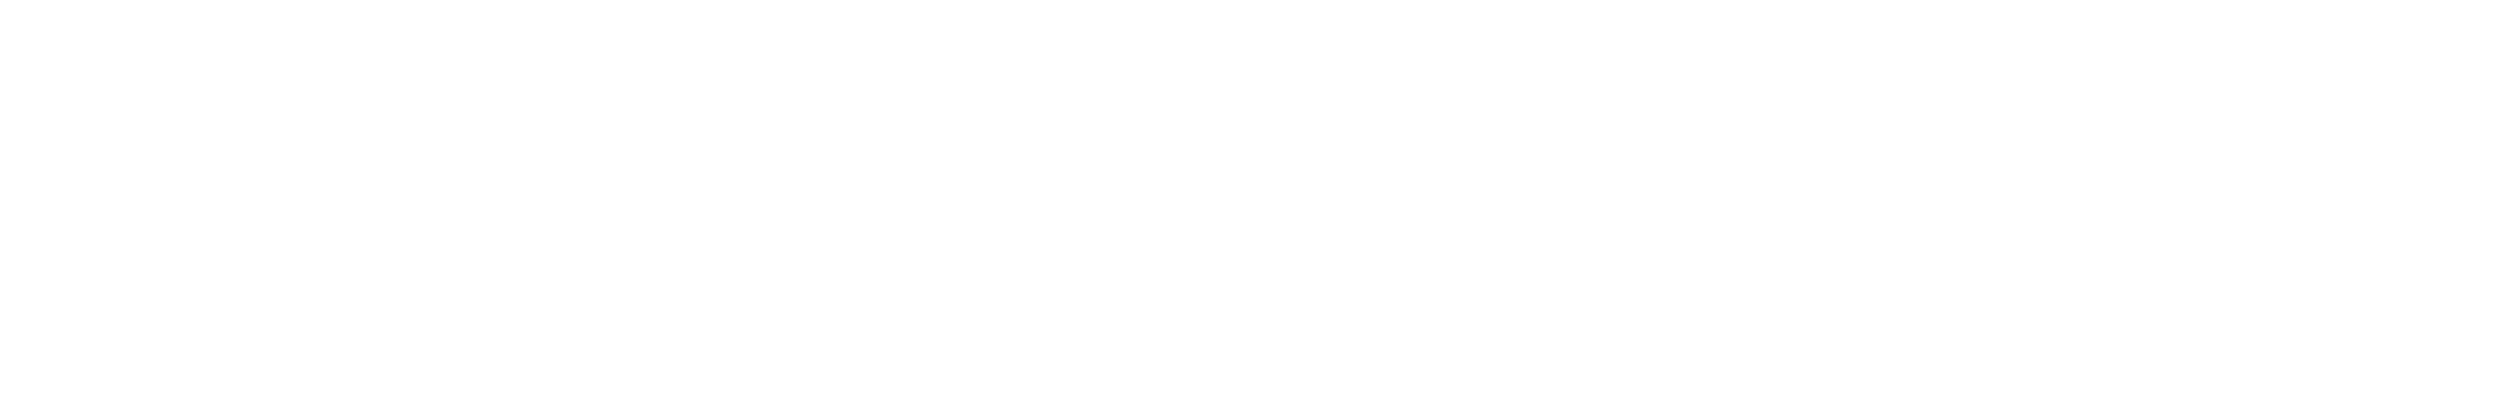 Little-Truck-White.png